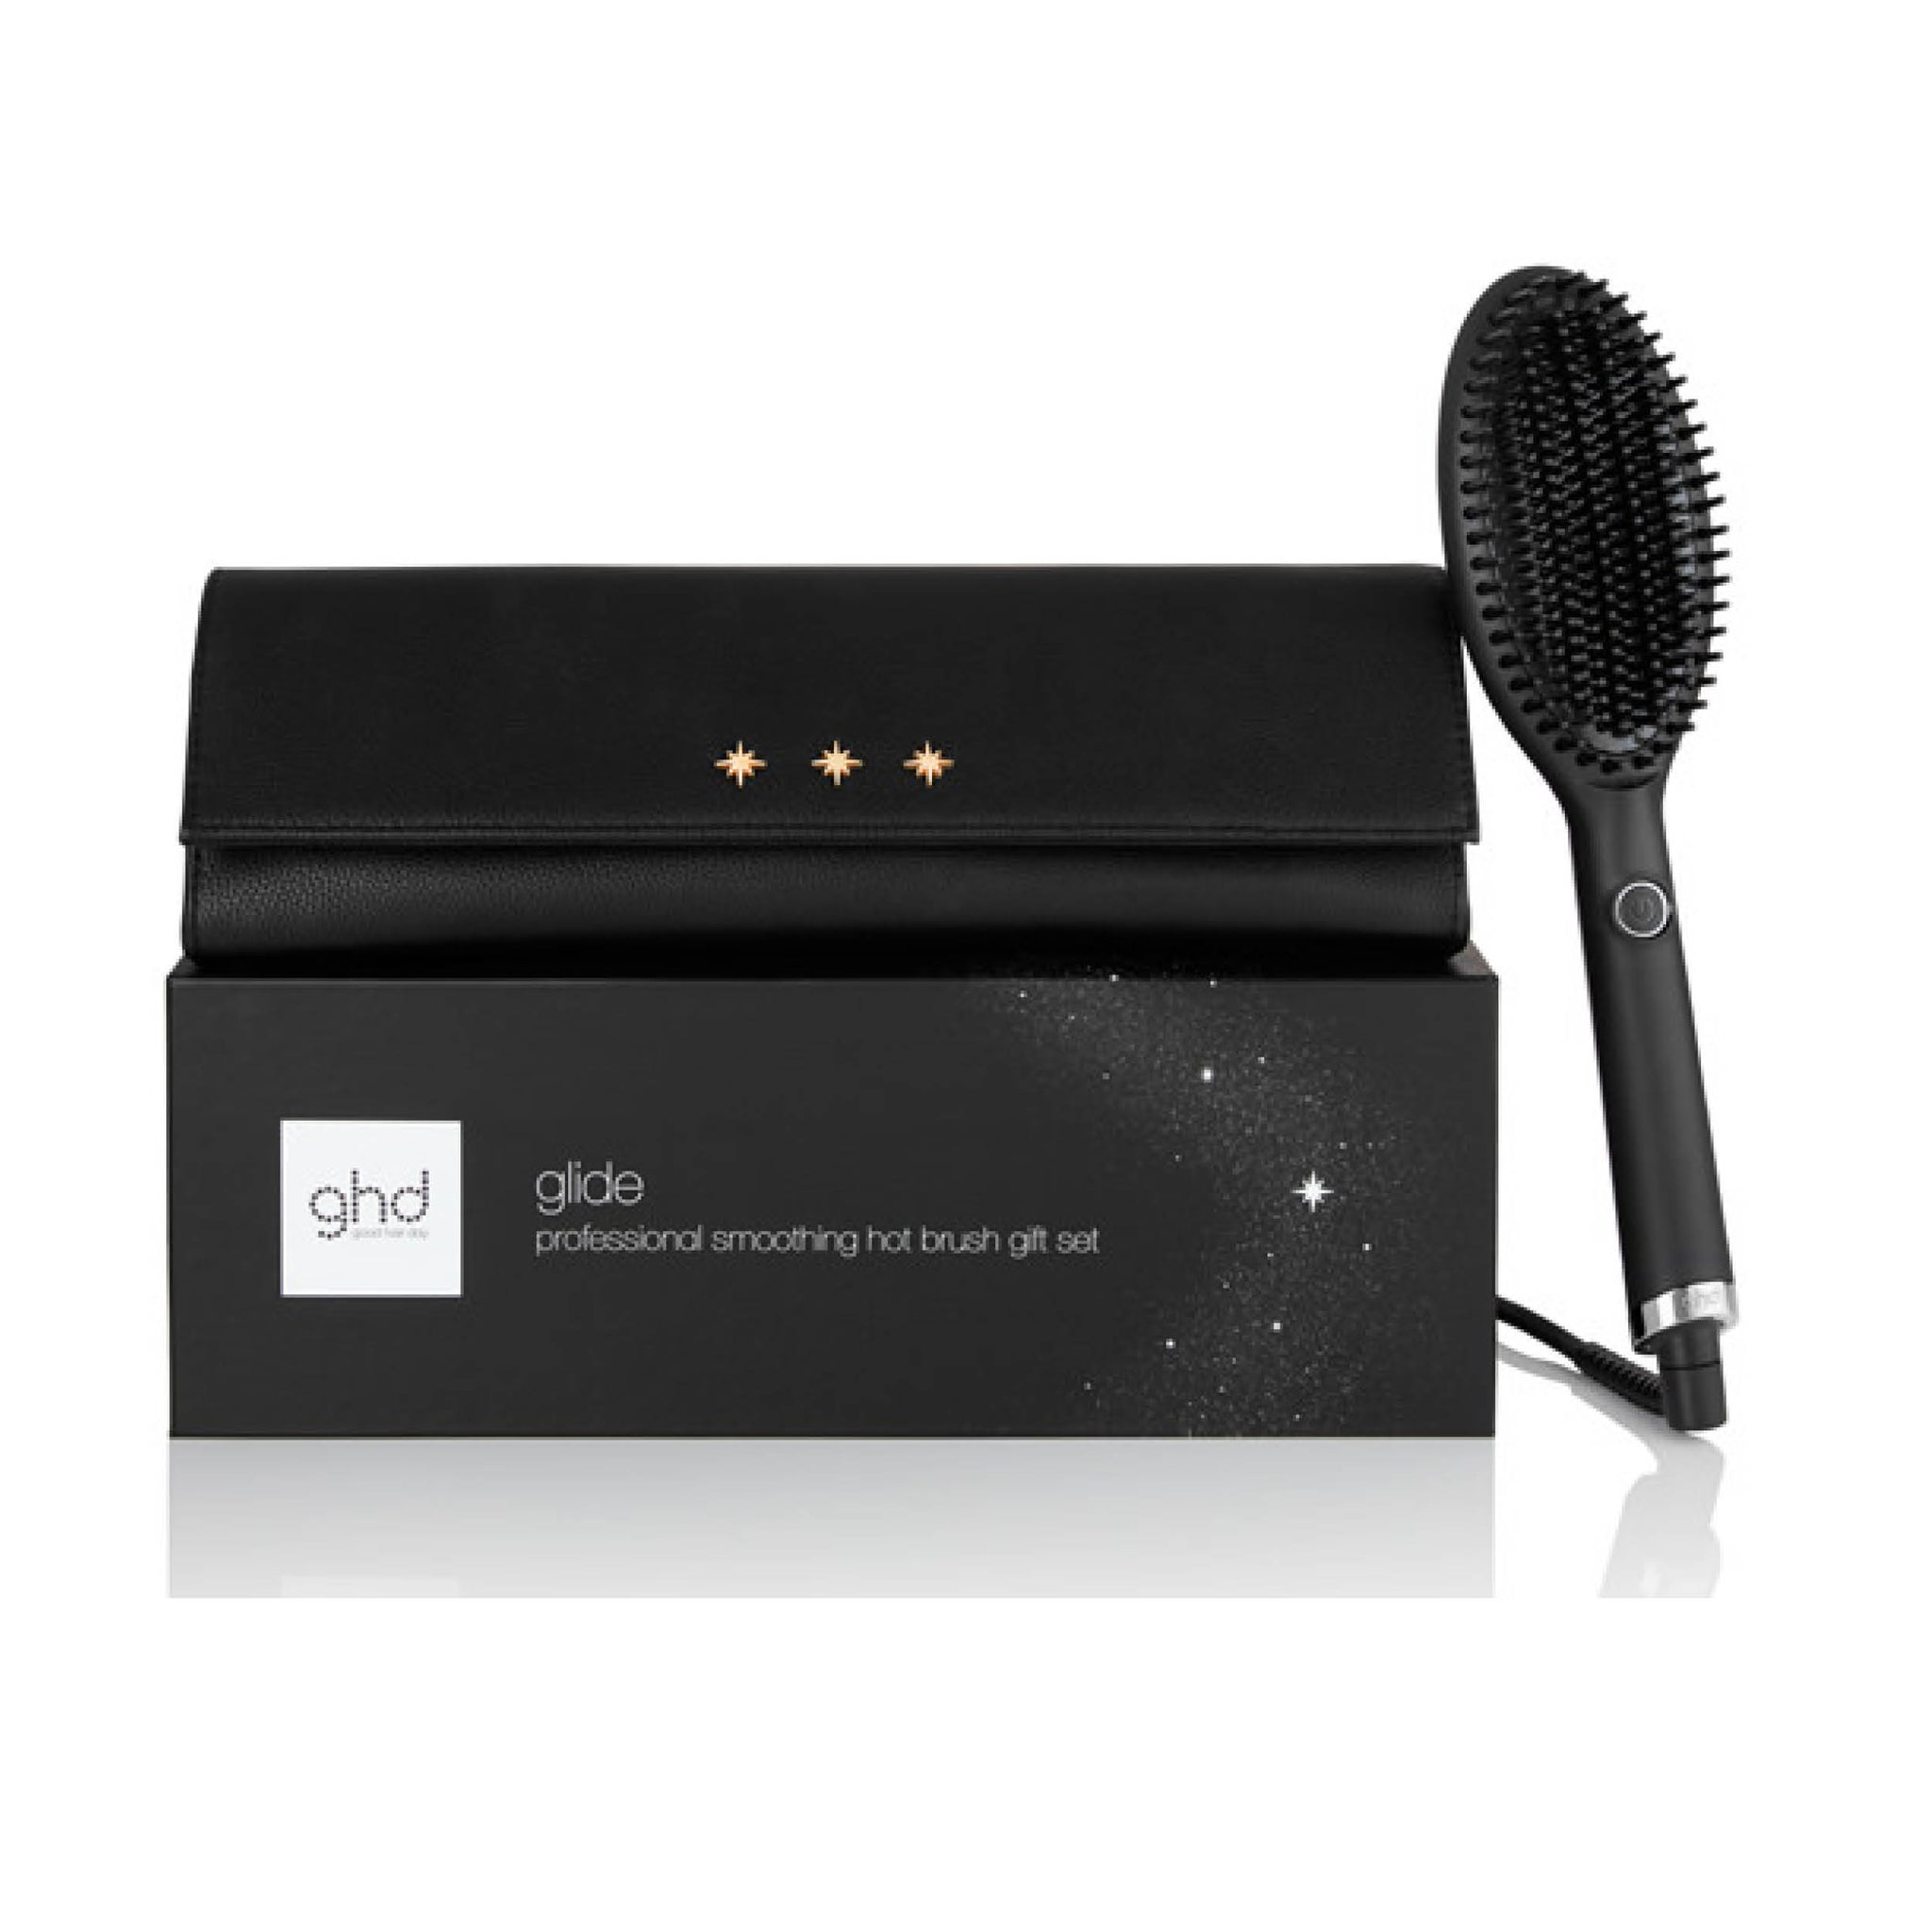 GHD Glide Professional Smoothing Hot Brush Gift Set